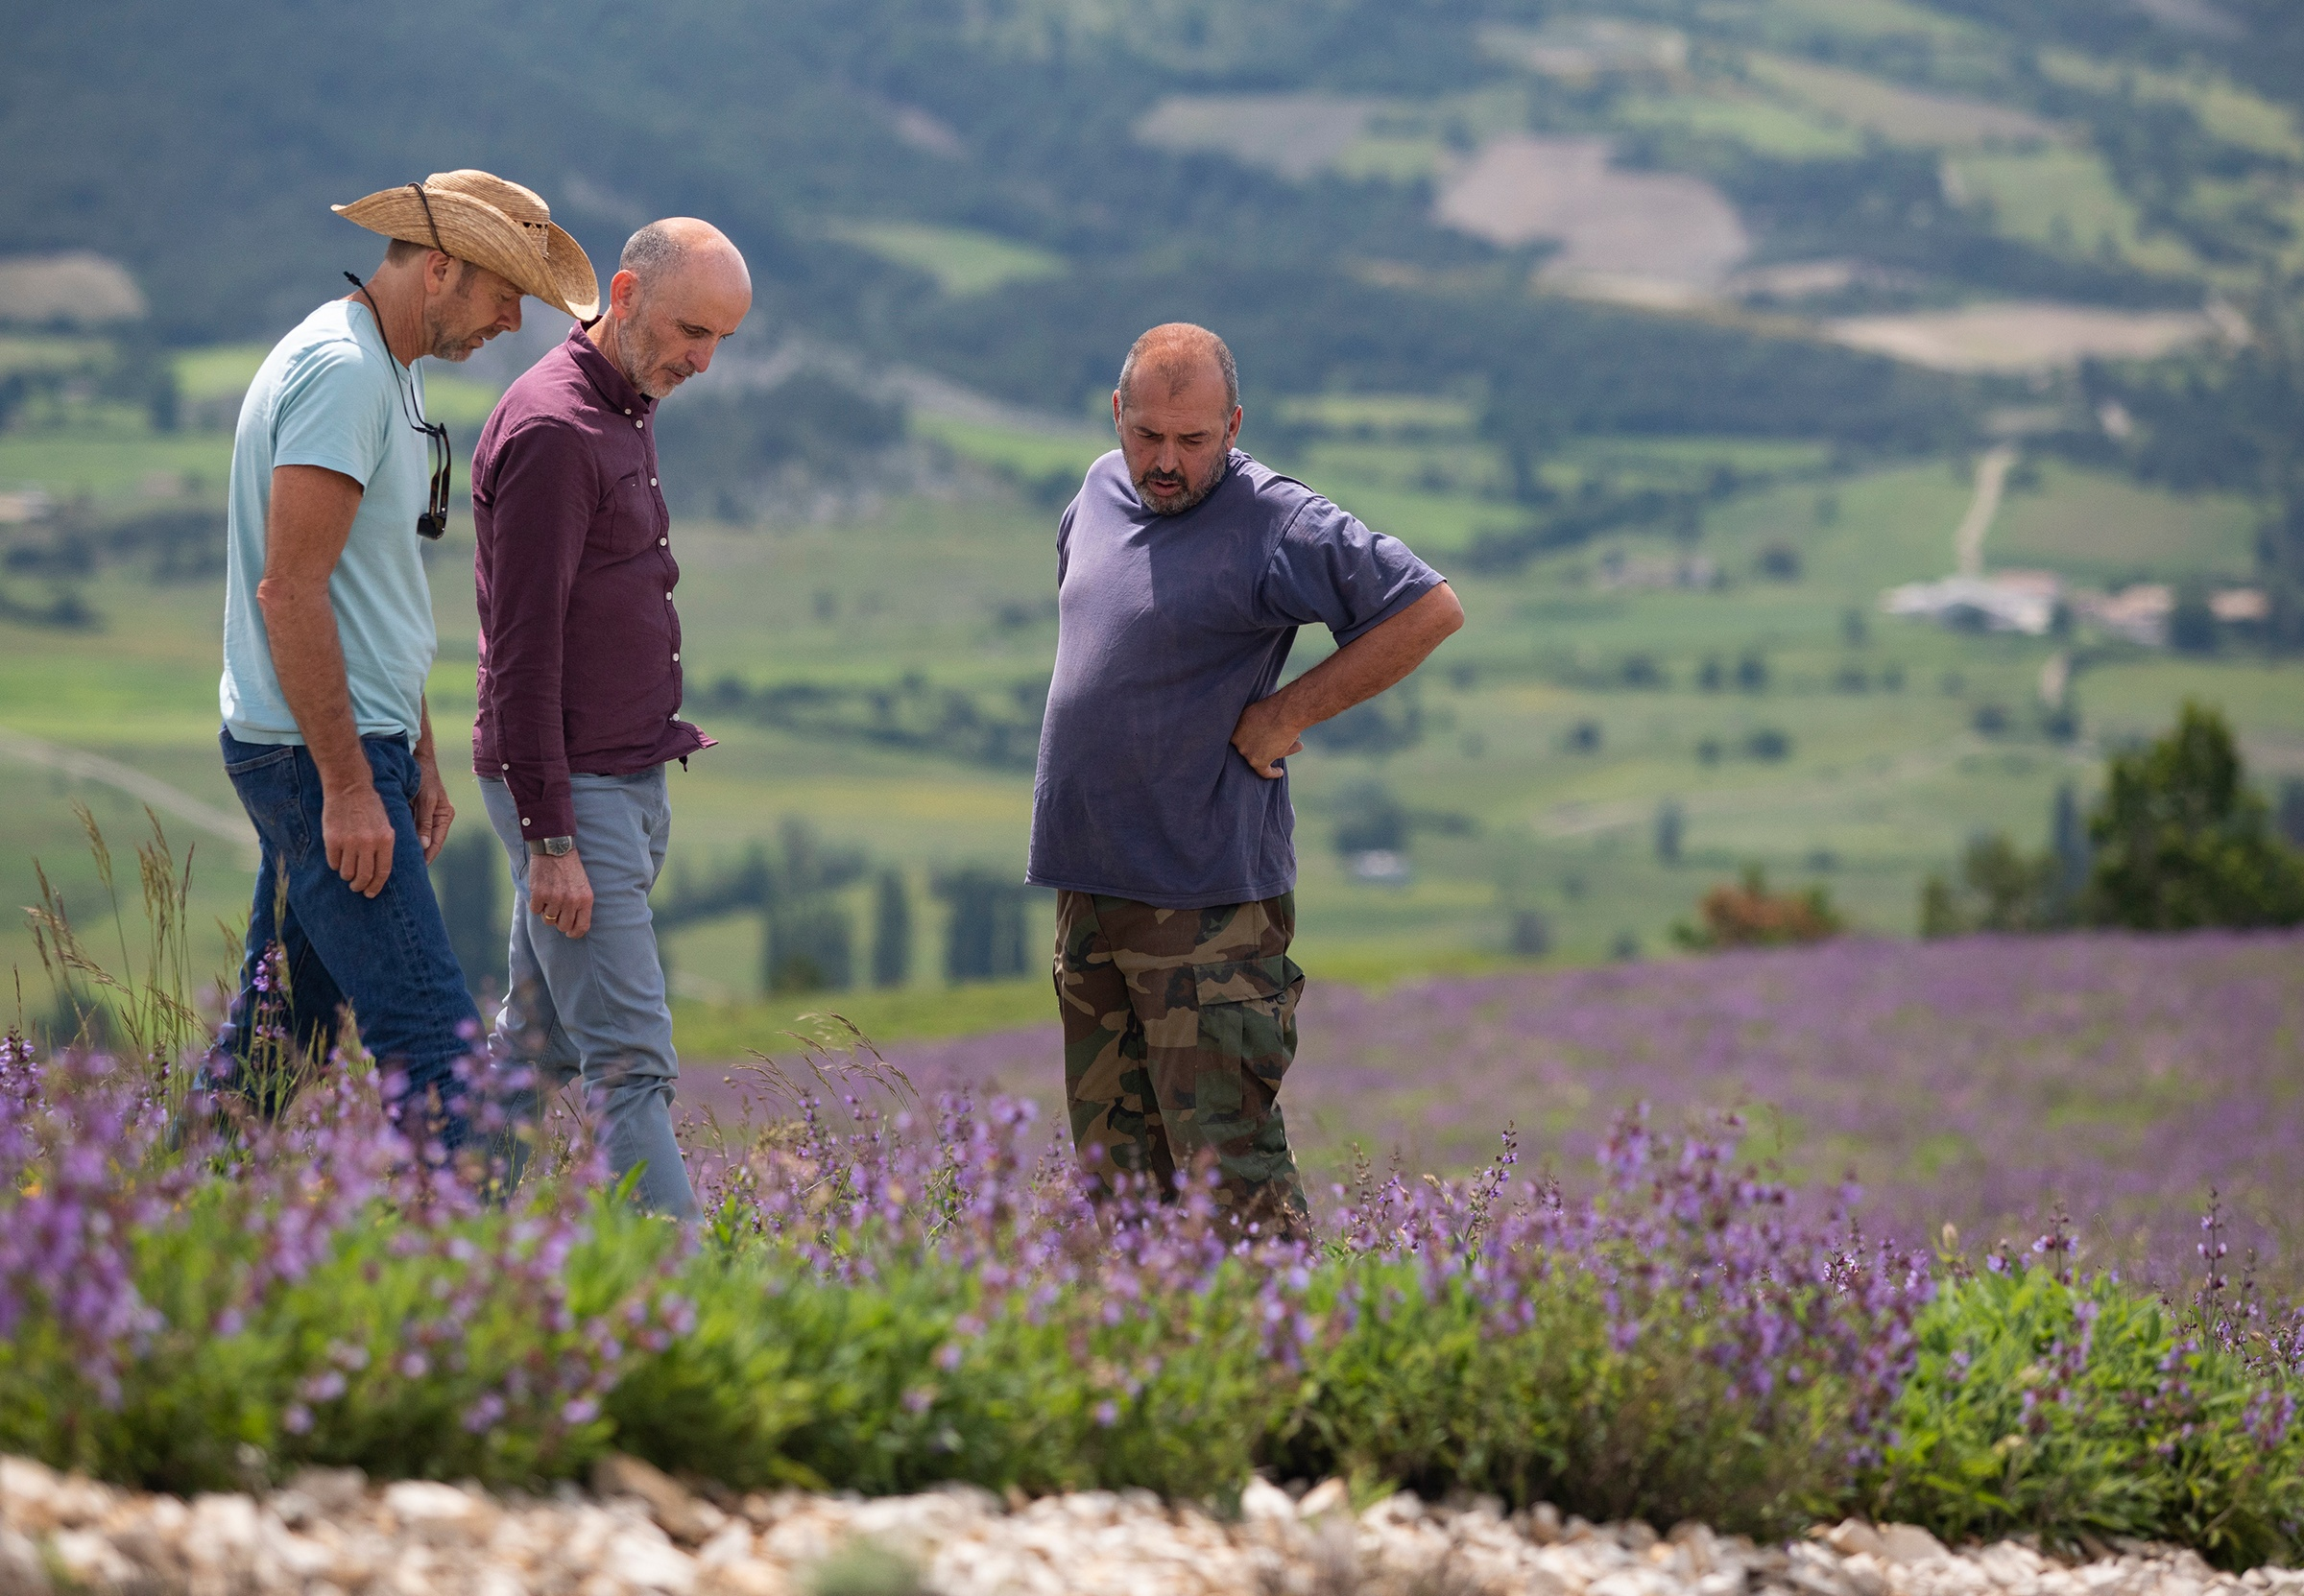 Three men looking at flowering sage plants on a hillside in Europe